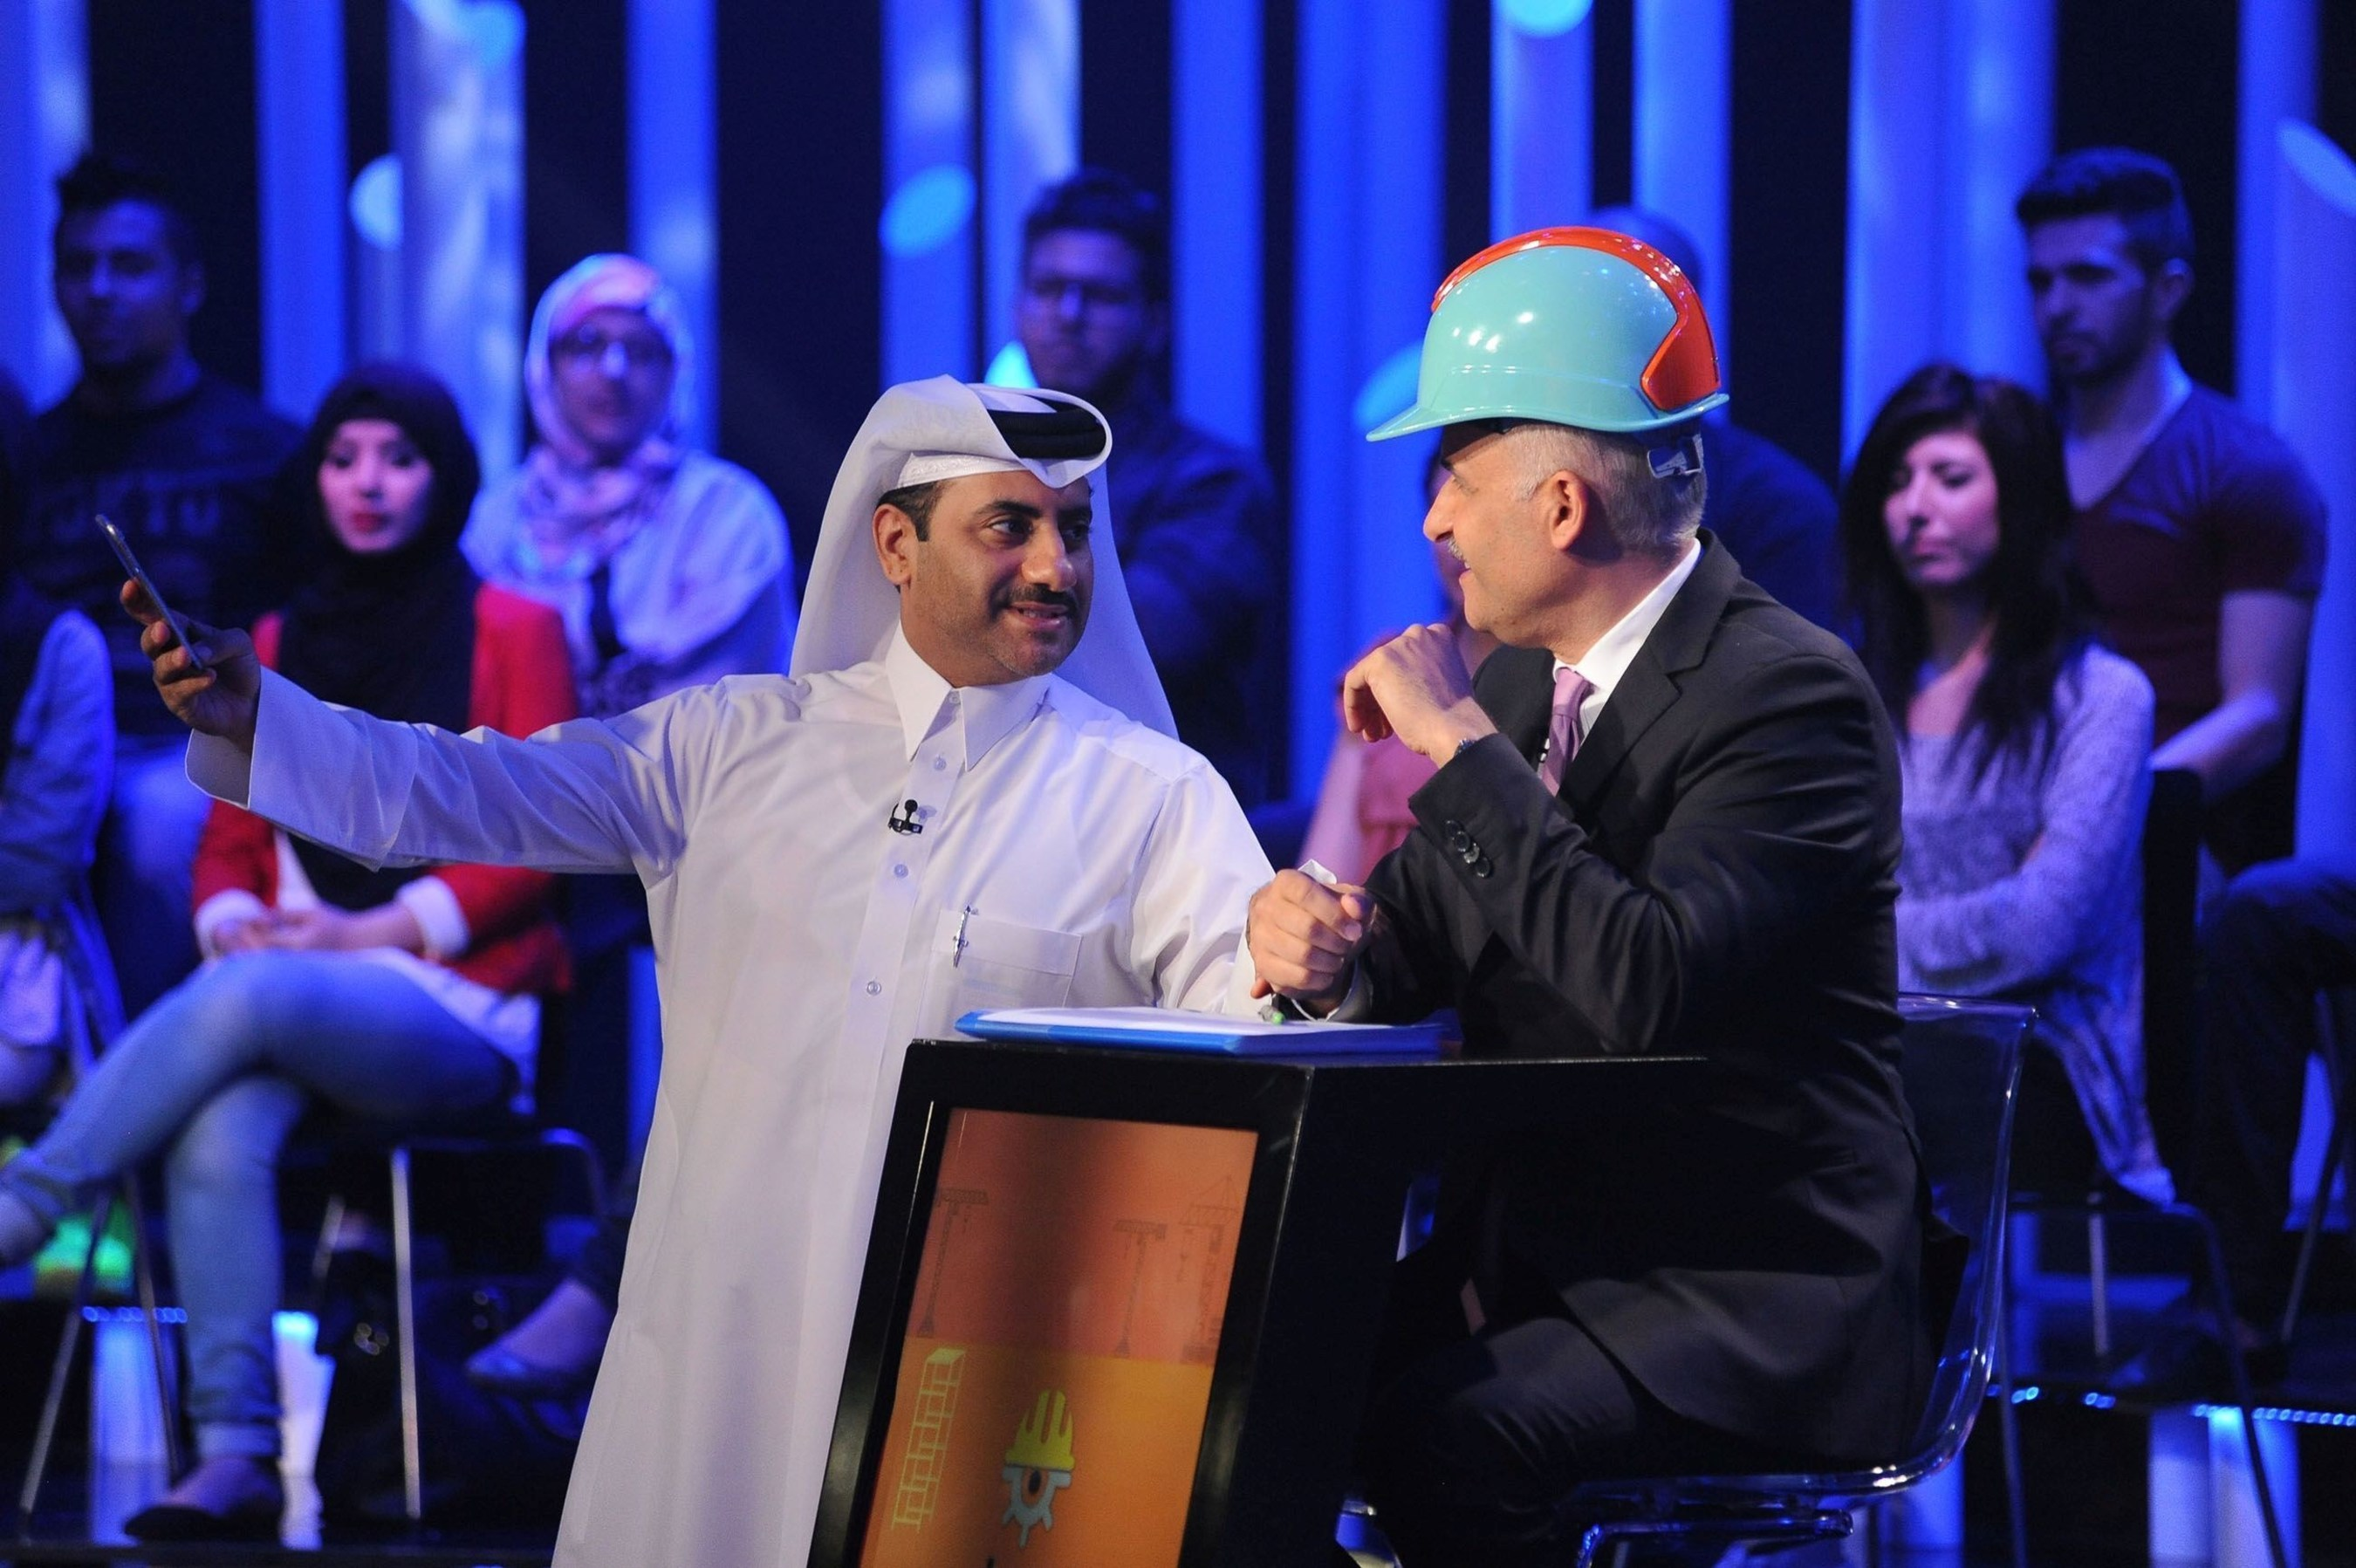 Hassan Dominates While Yaman Outscores Fawzy on Dramatic Stars of Science Episode on MBC4